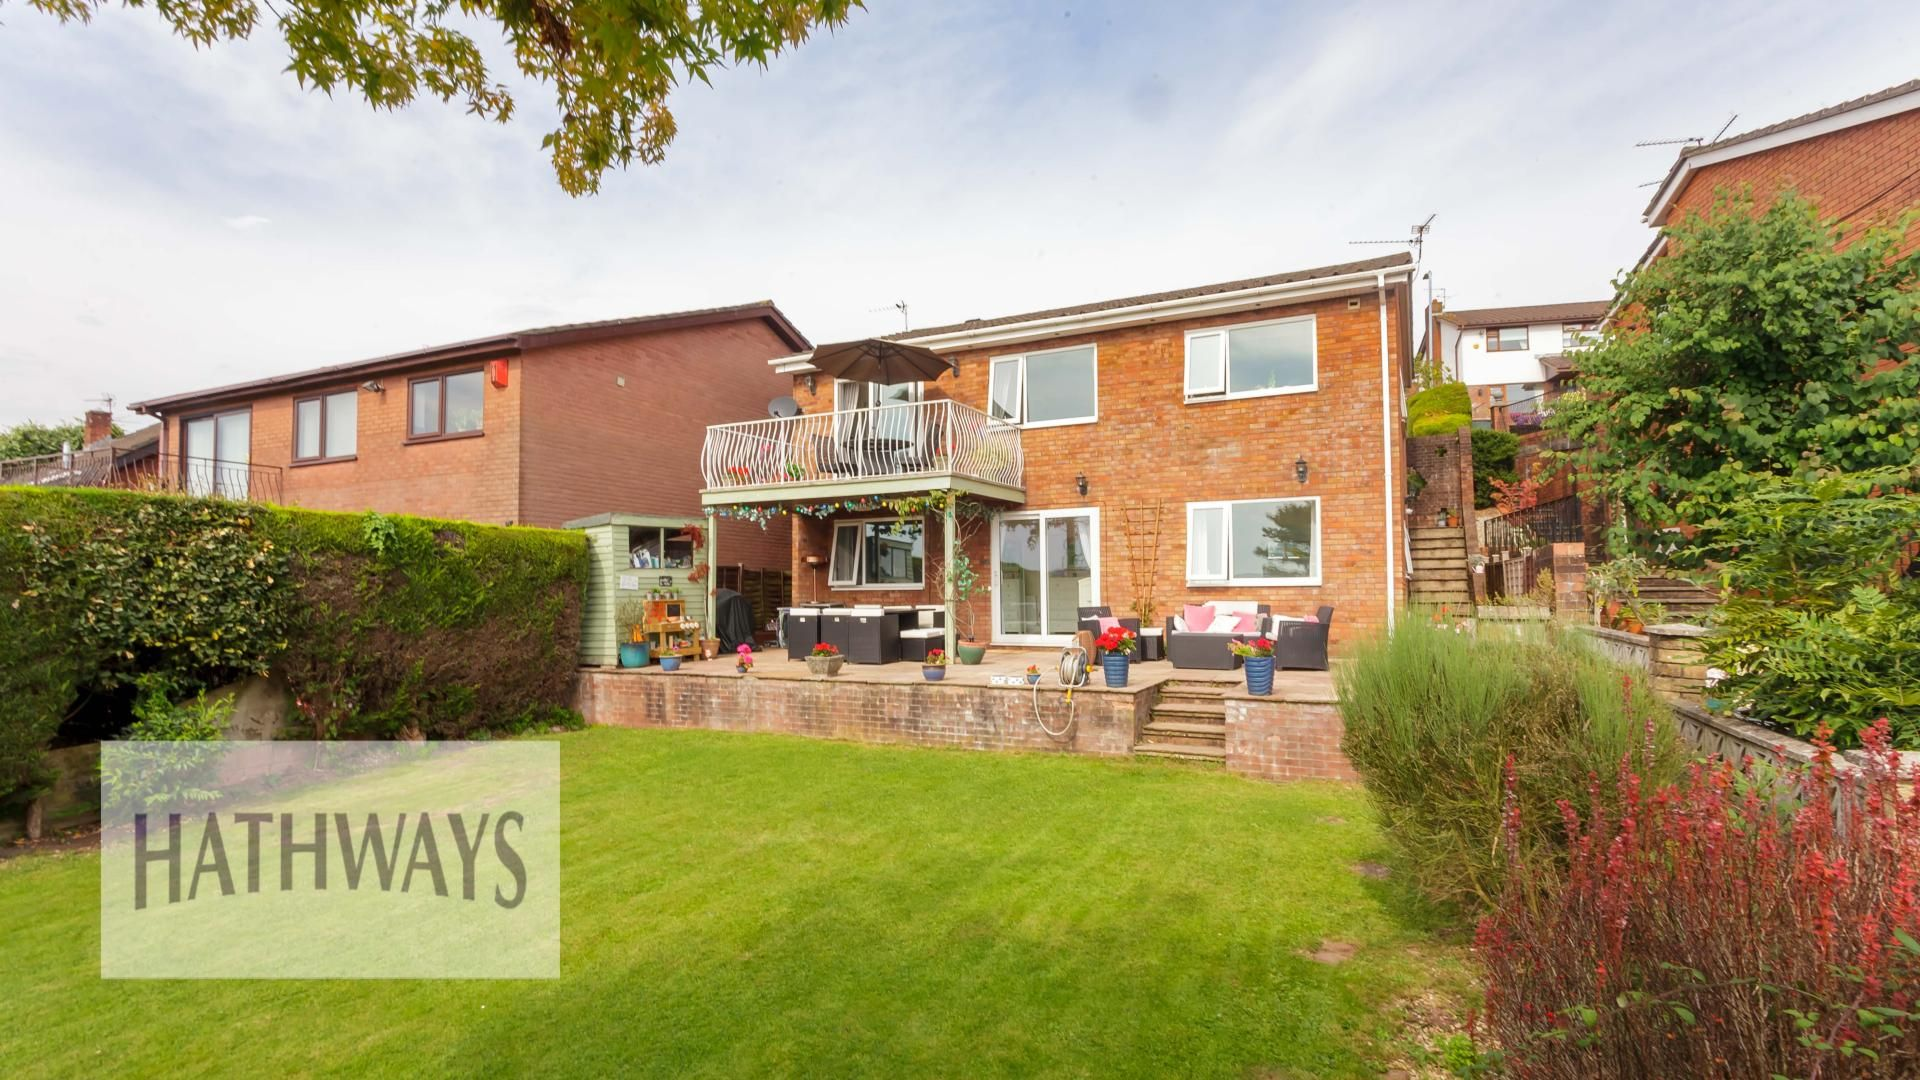 4 bed house for sale in Trinity View - Property Image 1